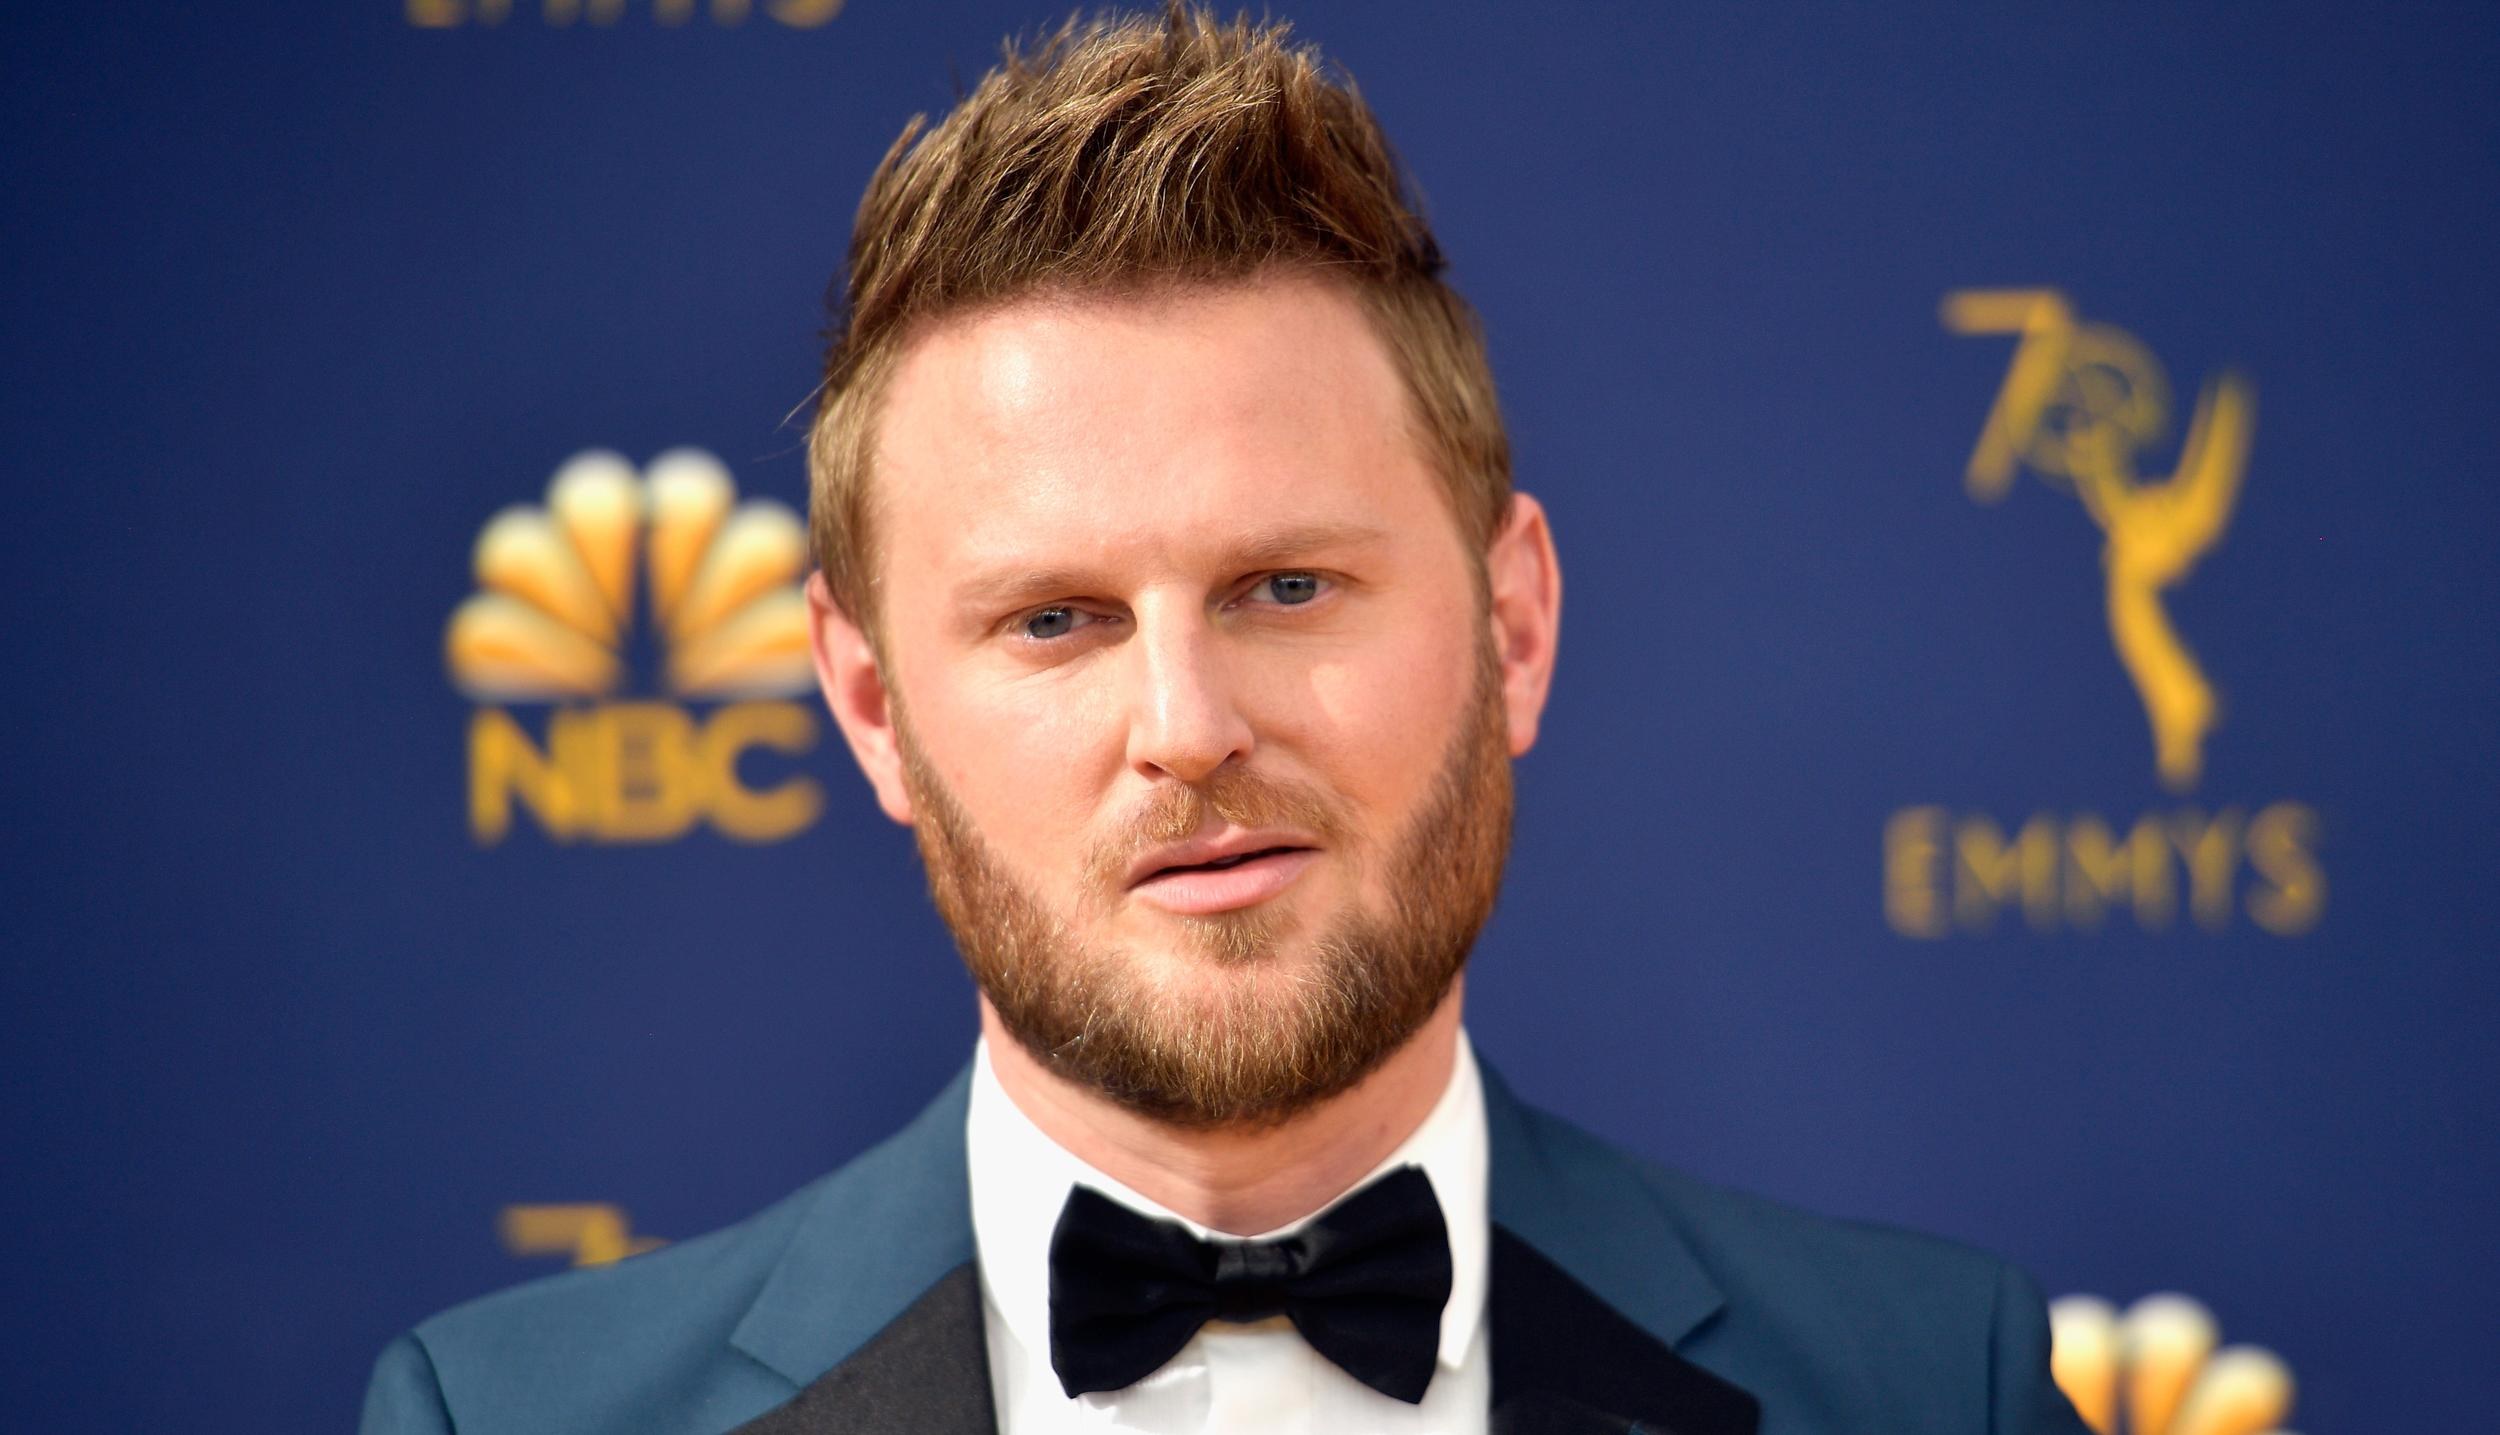 Bobby Berk Says These 4 Home Trends Are About to Win 2019